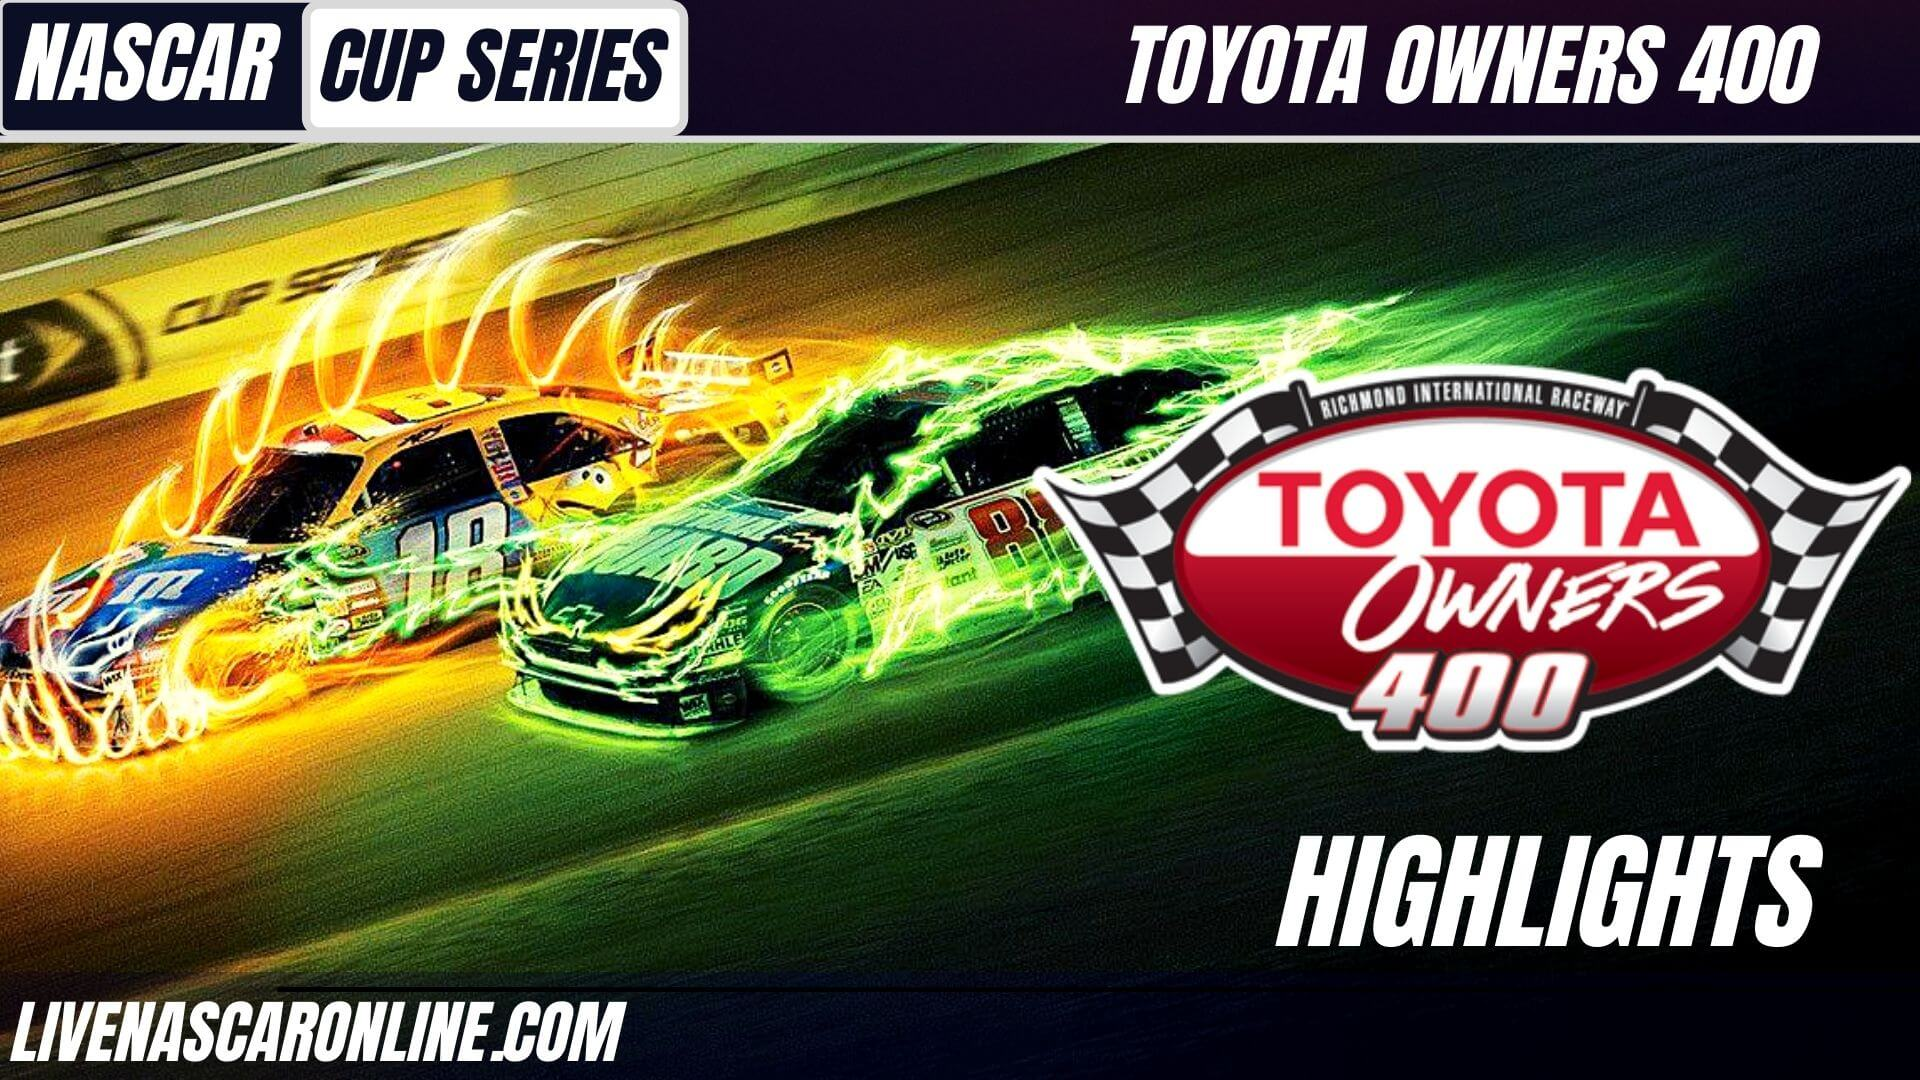 Toyota Owners 400 Highlights 2021 Nascar Cup Series